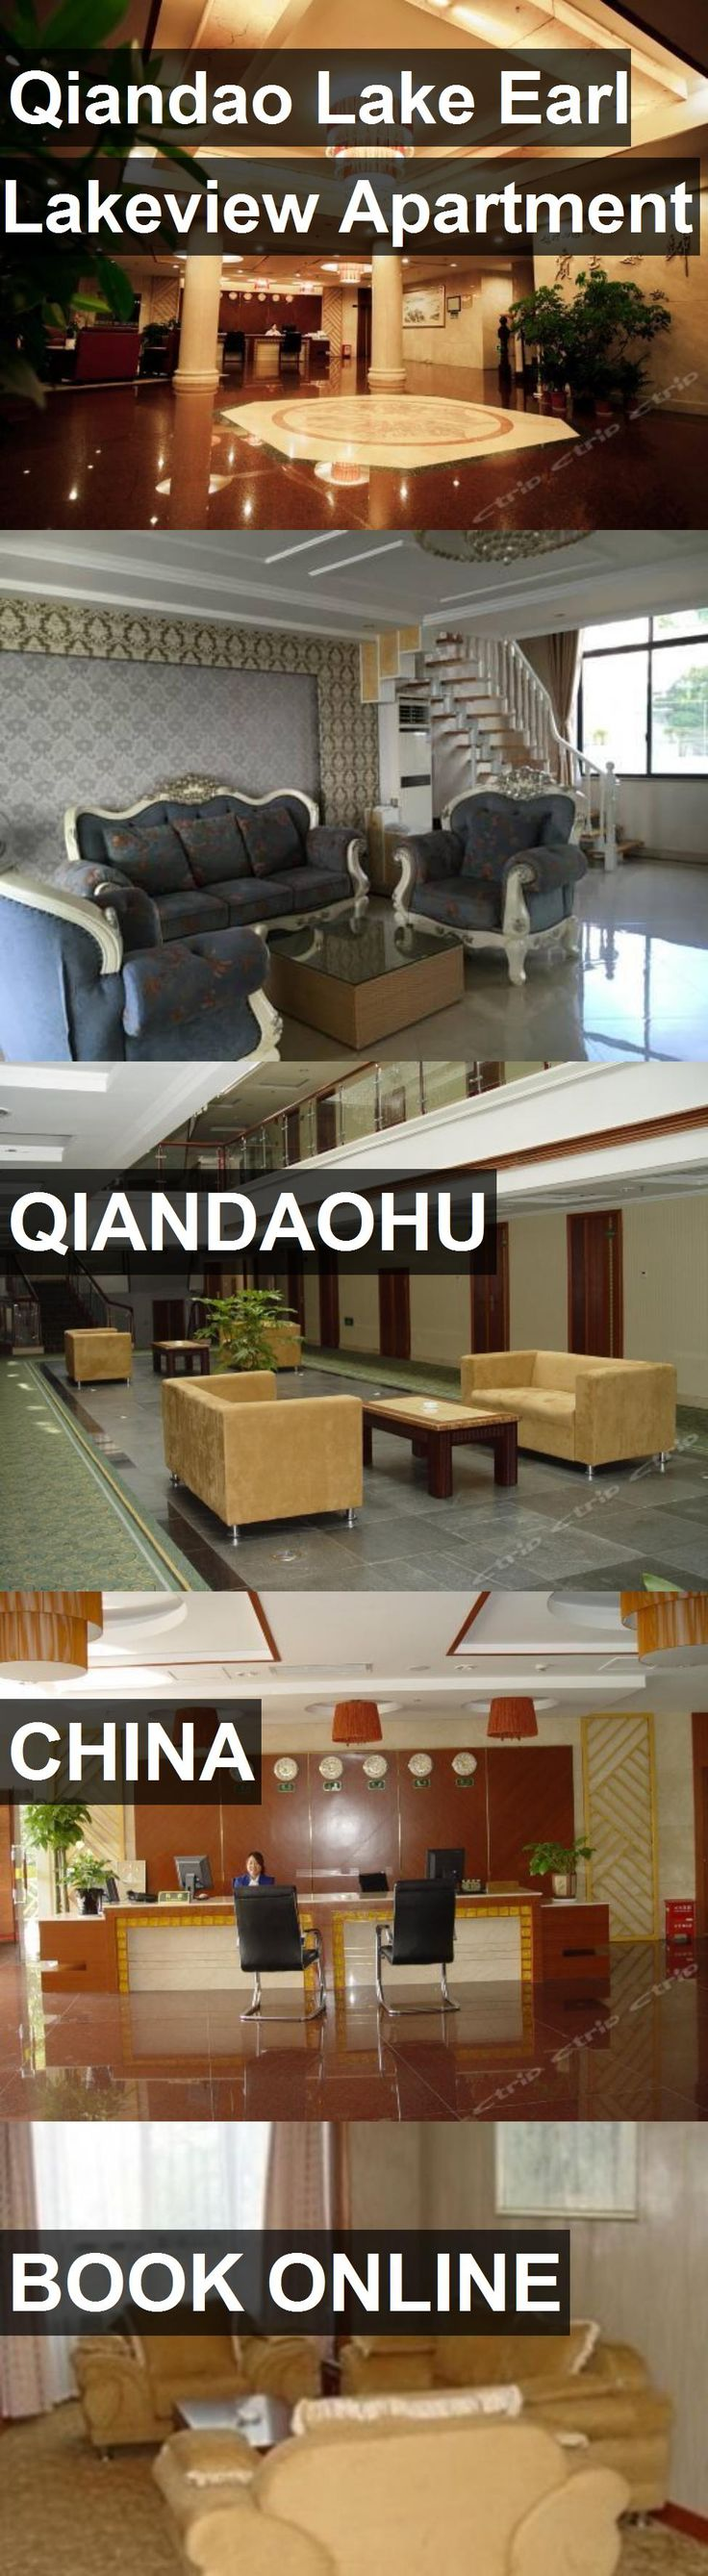 Hotel Qiandao Lake Earl Lakeview Apartment in Qiandaohu, China. For more information, photos, reviews and best prices please follow the link. #China #Qiandaohu #QiandaoLakeEarlLakeviewApartment #hotel #travel #vacation